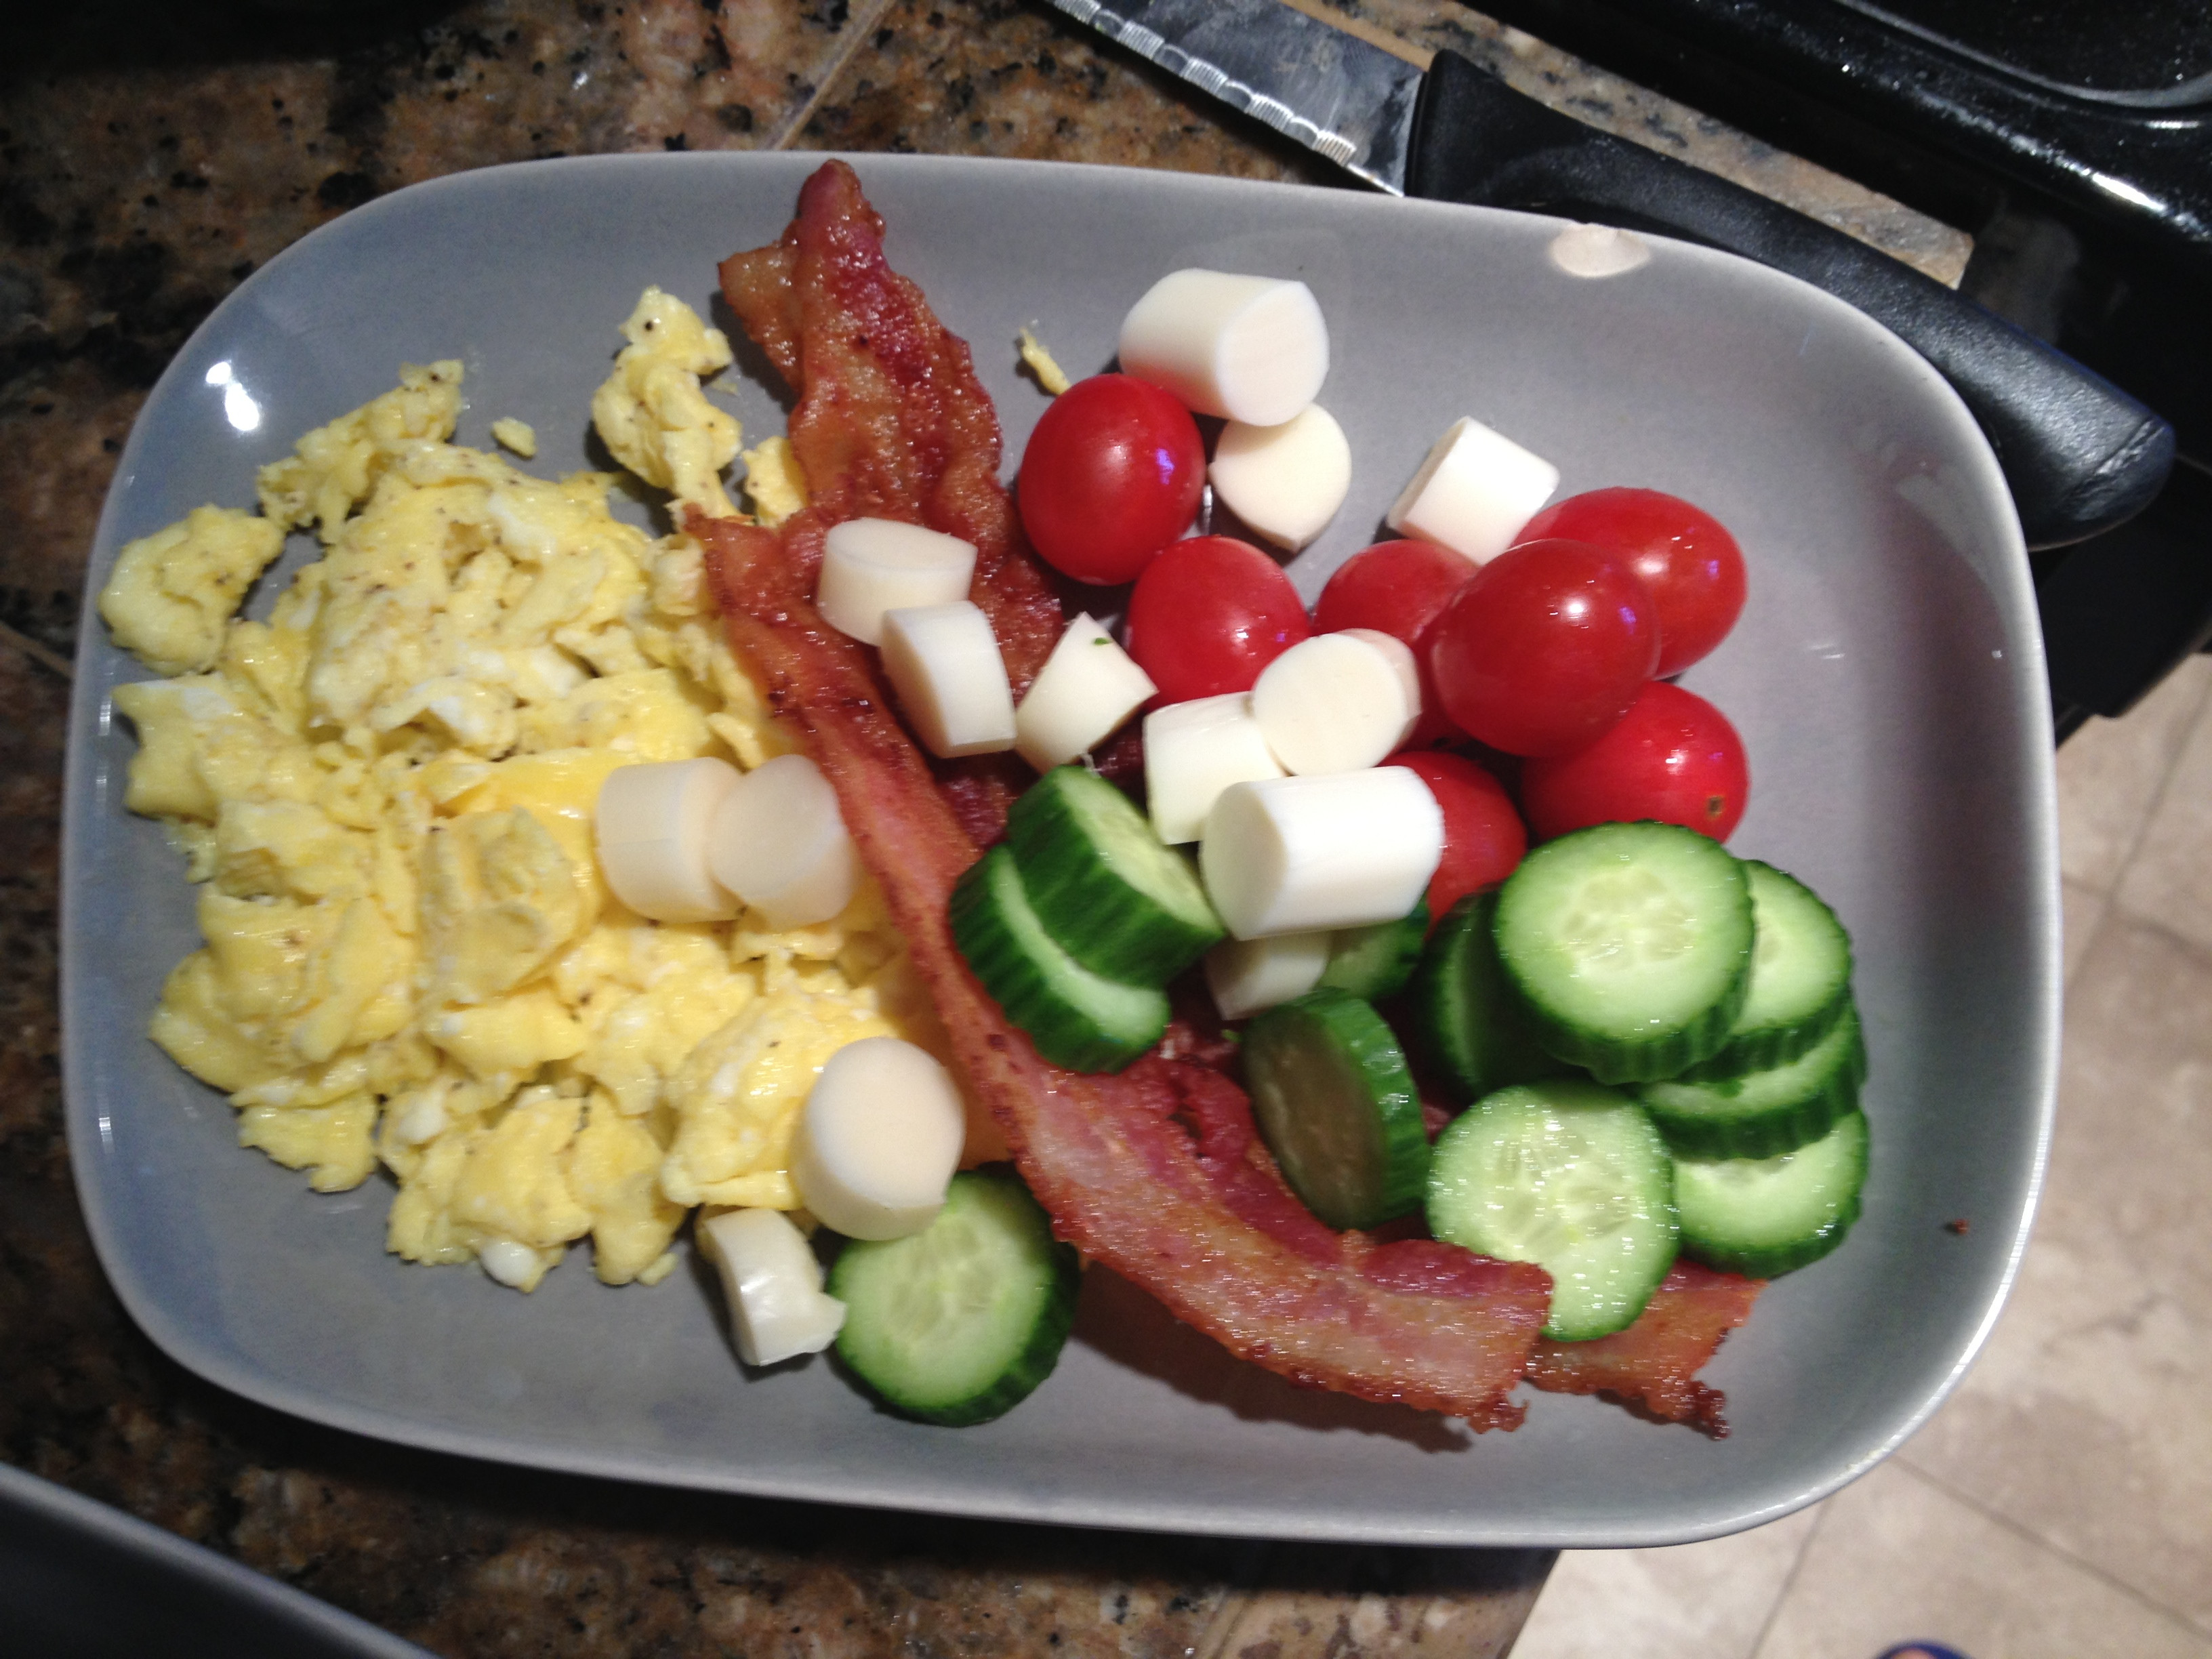 Low Fat Breakfast Meat  Low Calorie Protein Sources